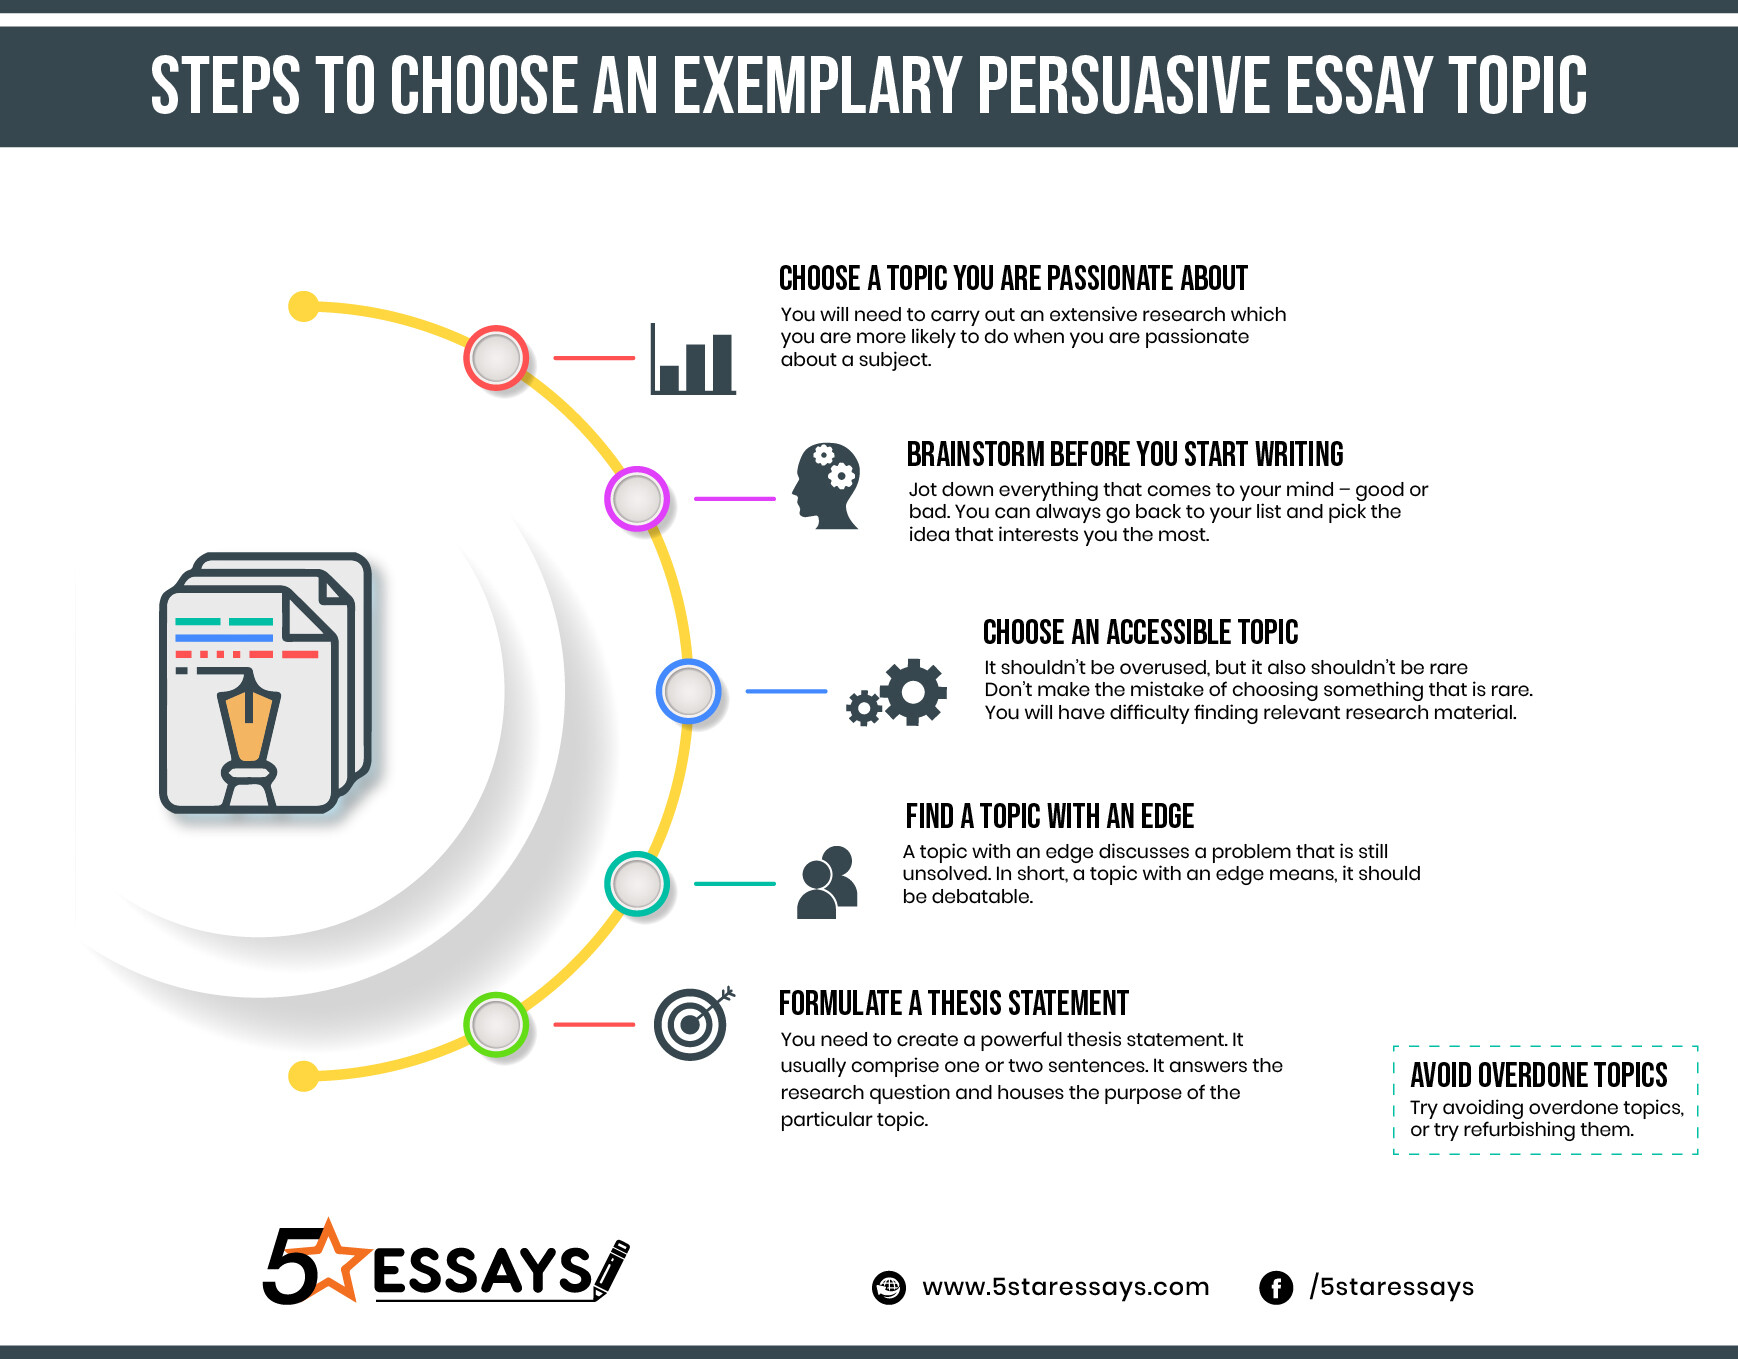 Persuasive Essay Writing INFOGRAPHIC